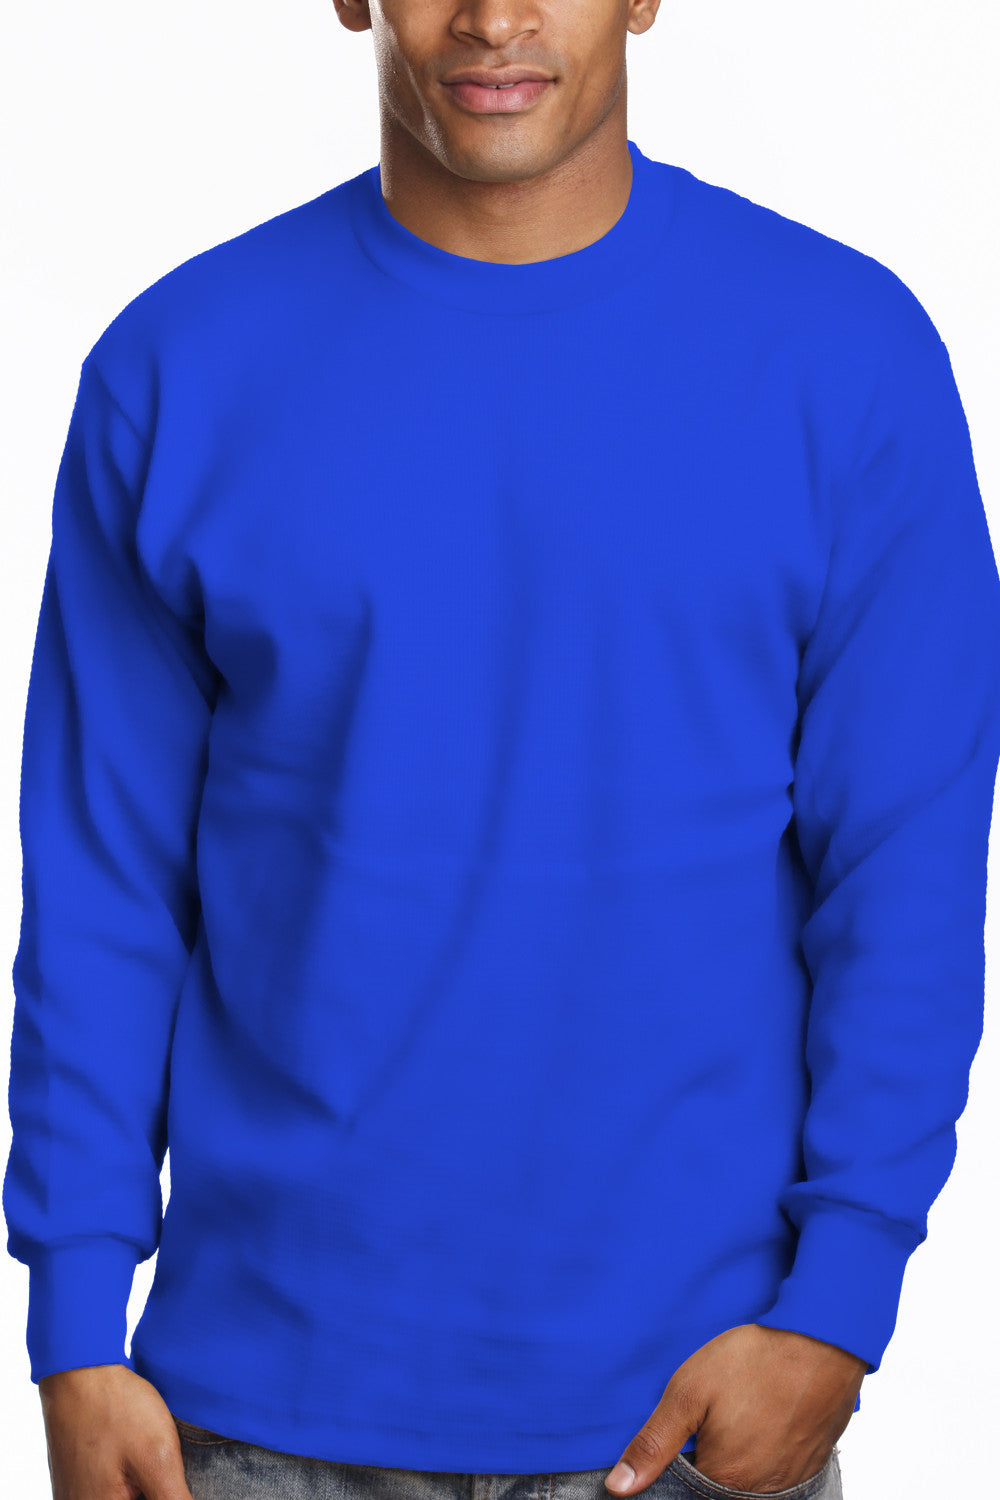 Mens Long Sleeve Super Heavy Shirt Tall Size Royal Blue